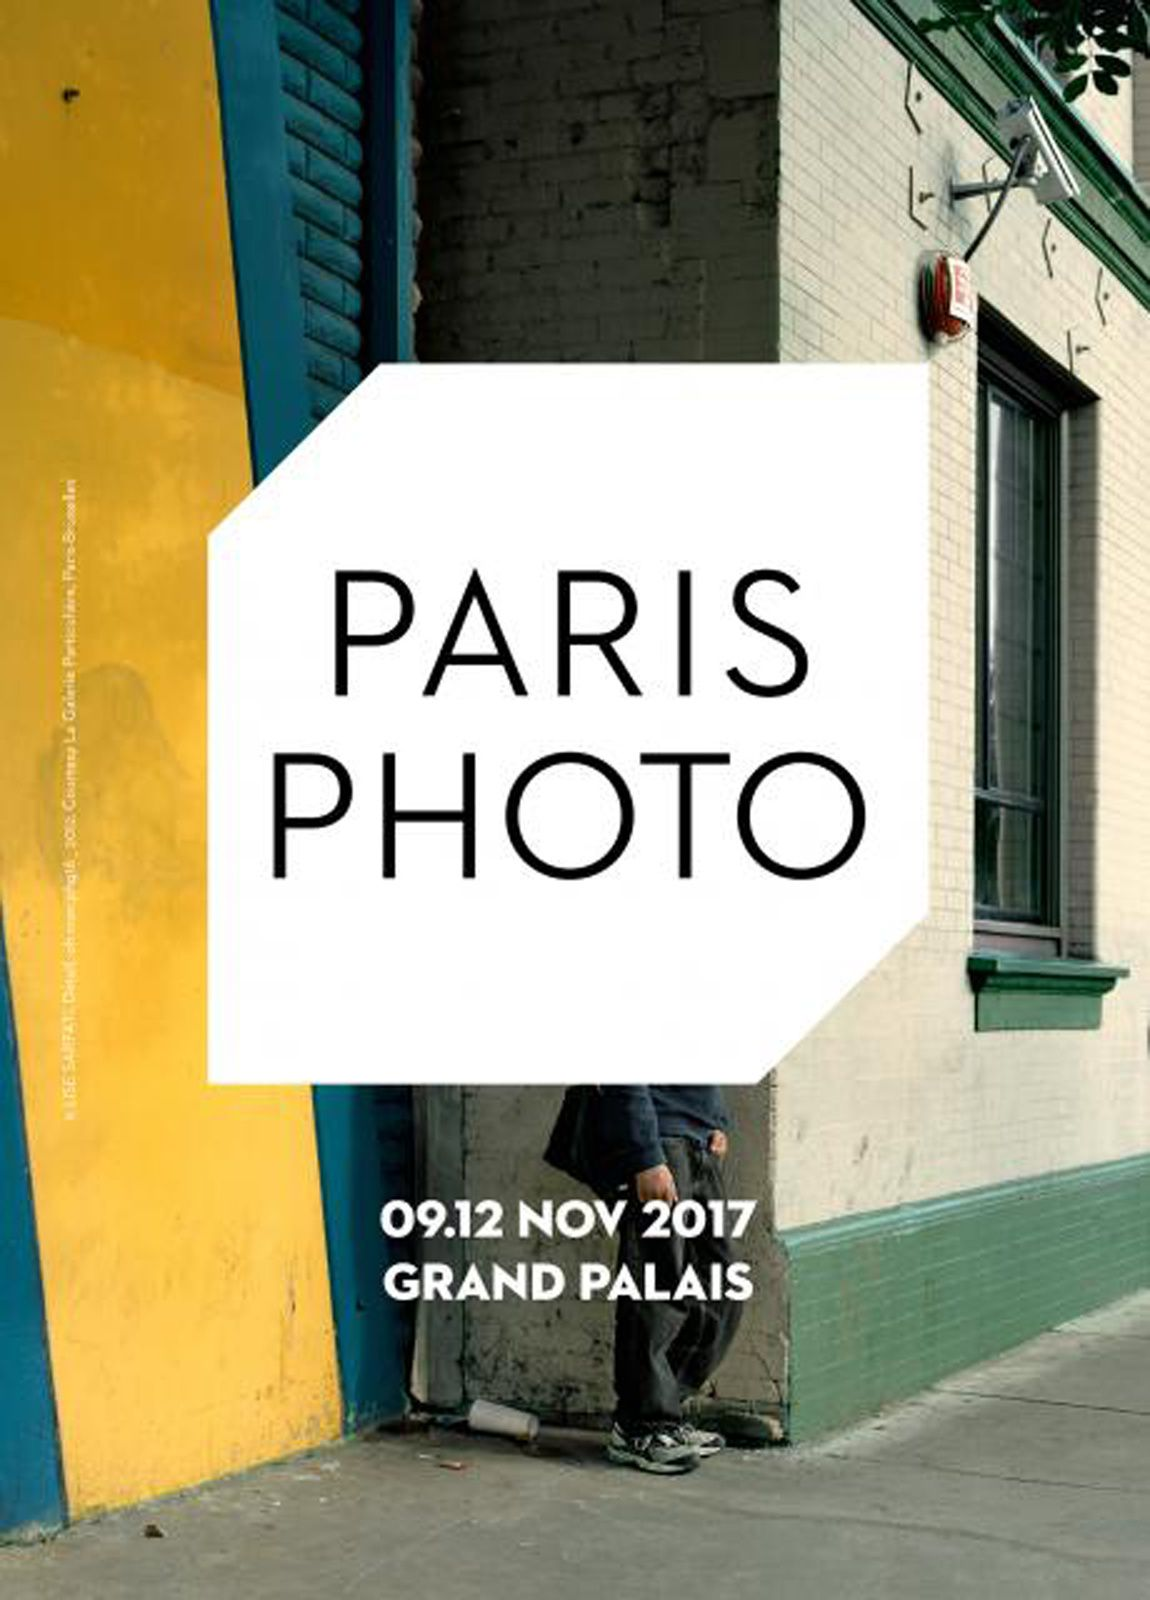 PARIS PHOTO 2017